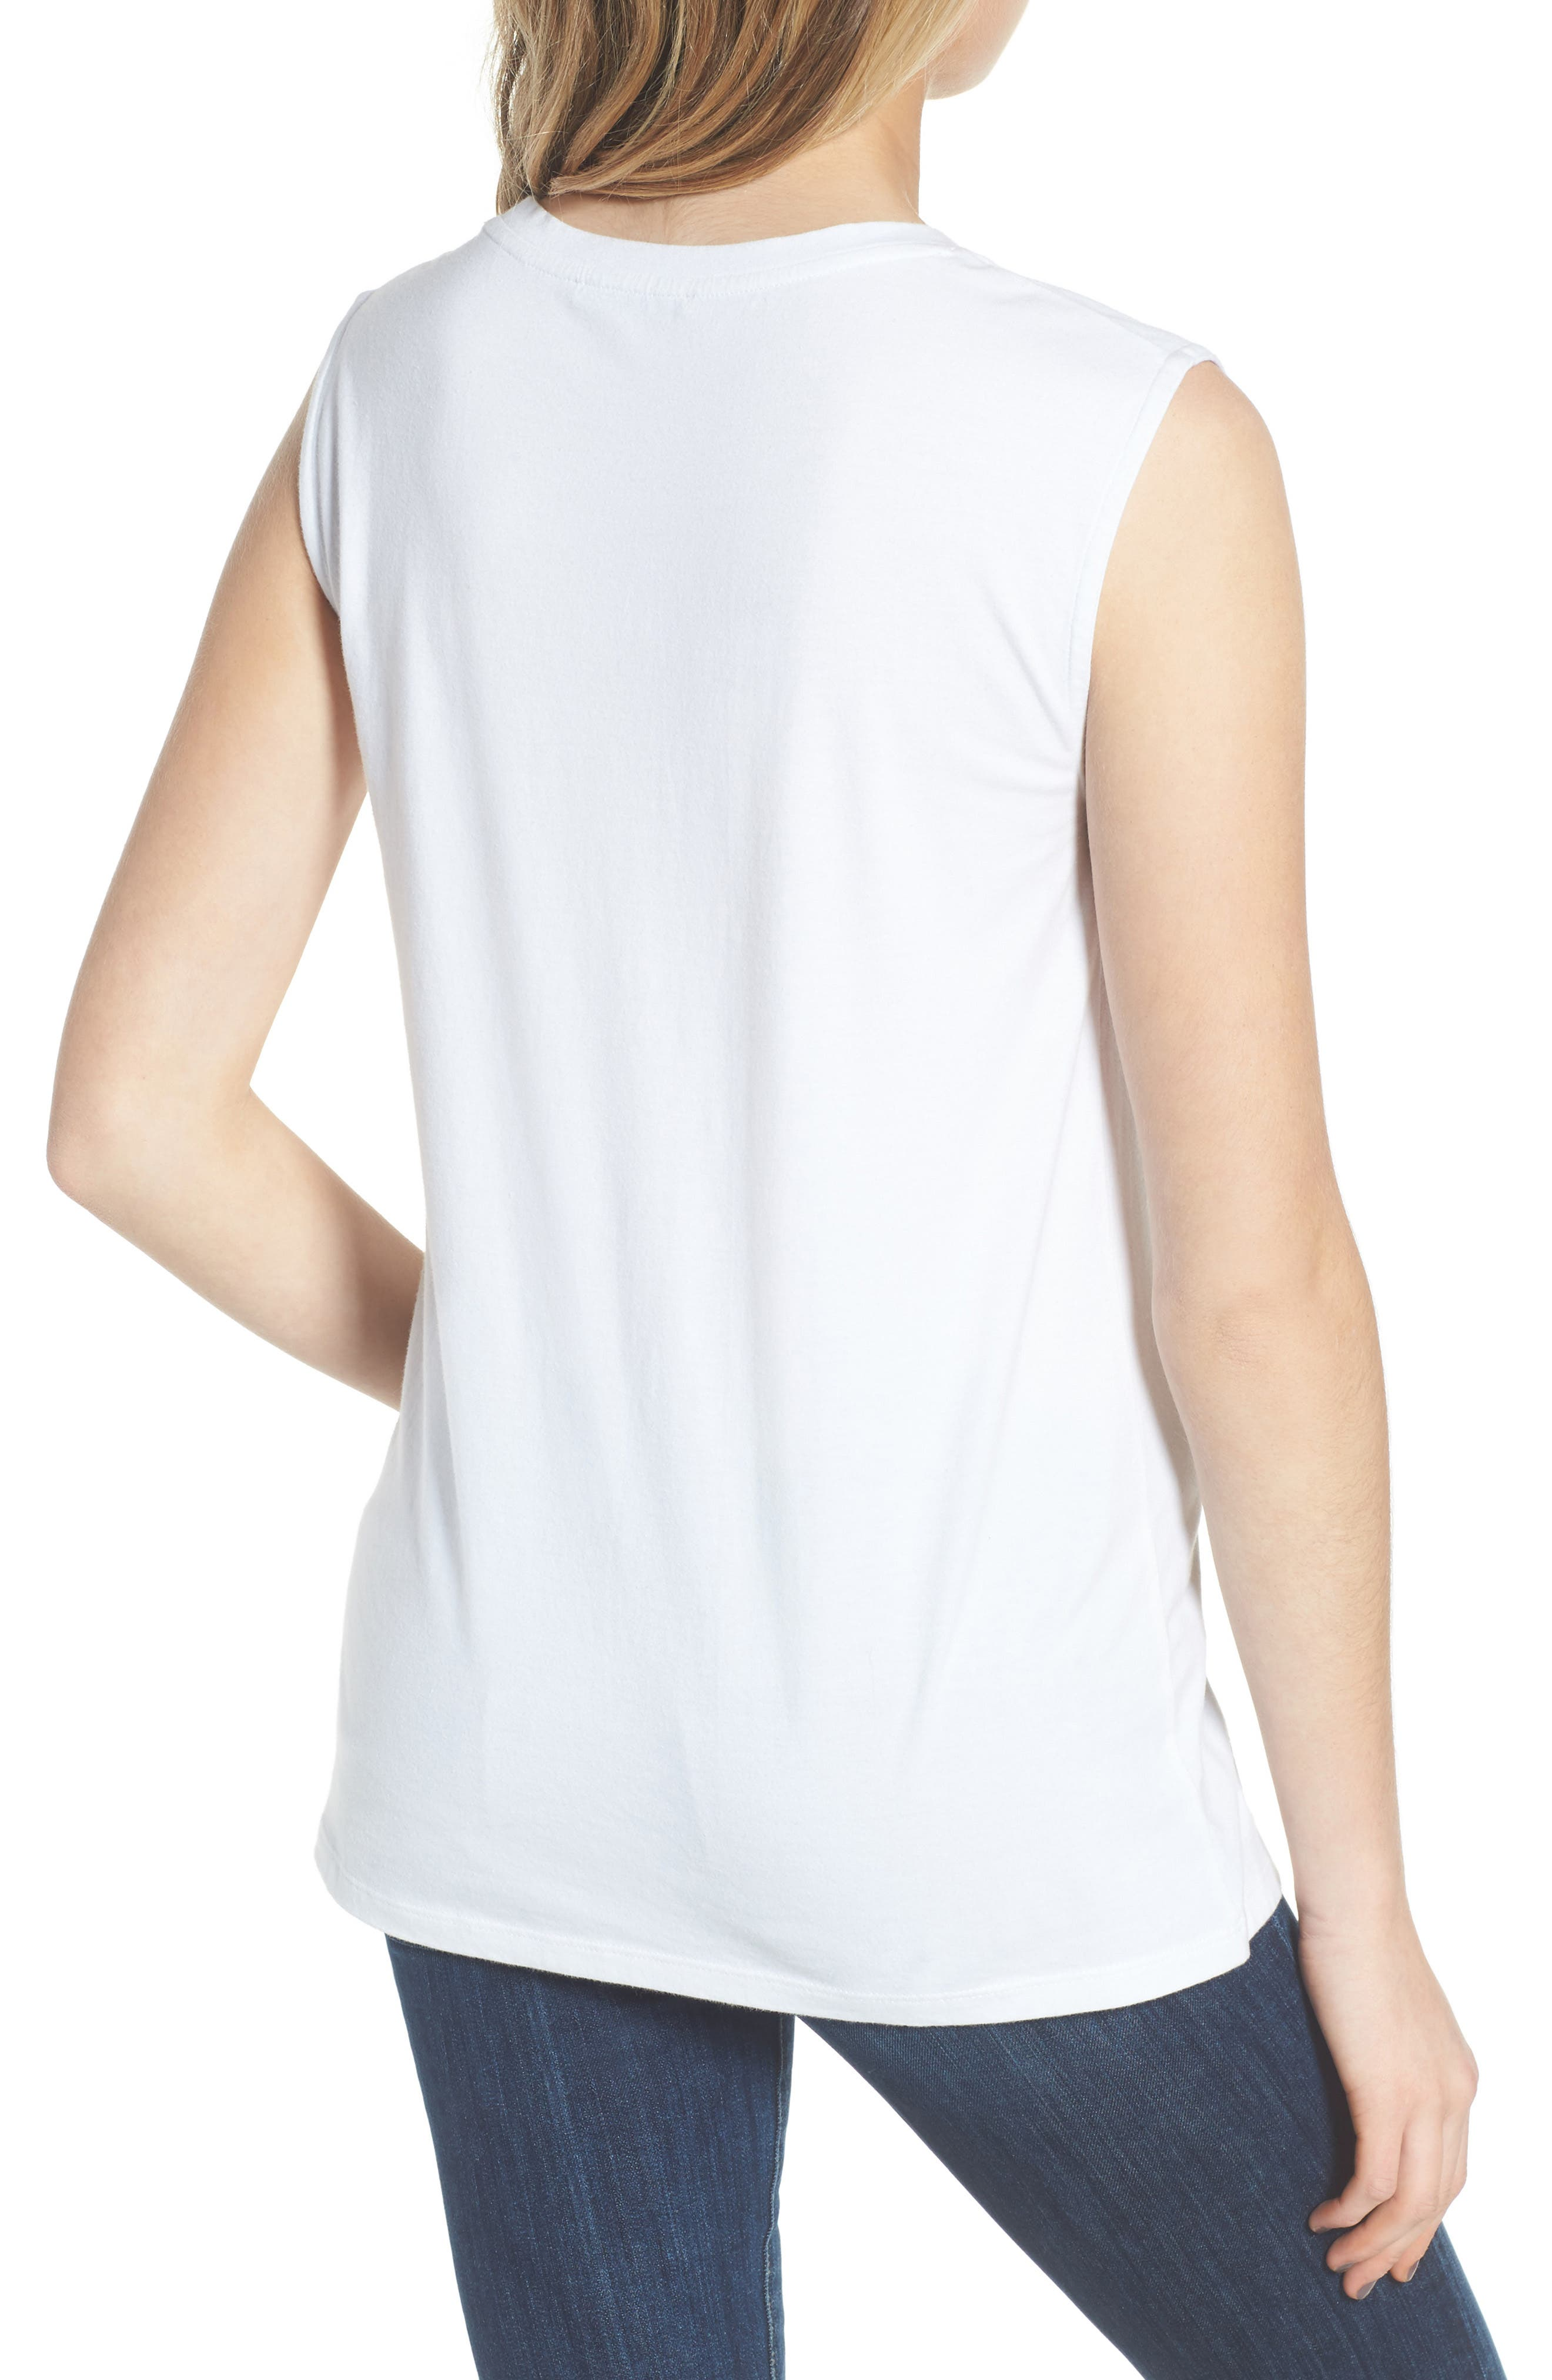 Grl Pwr Muscle Tee,                             Alternate thumbnail 2, color,                             White/ Terracotta